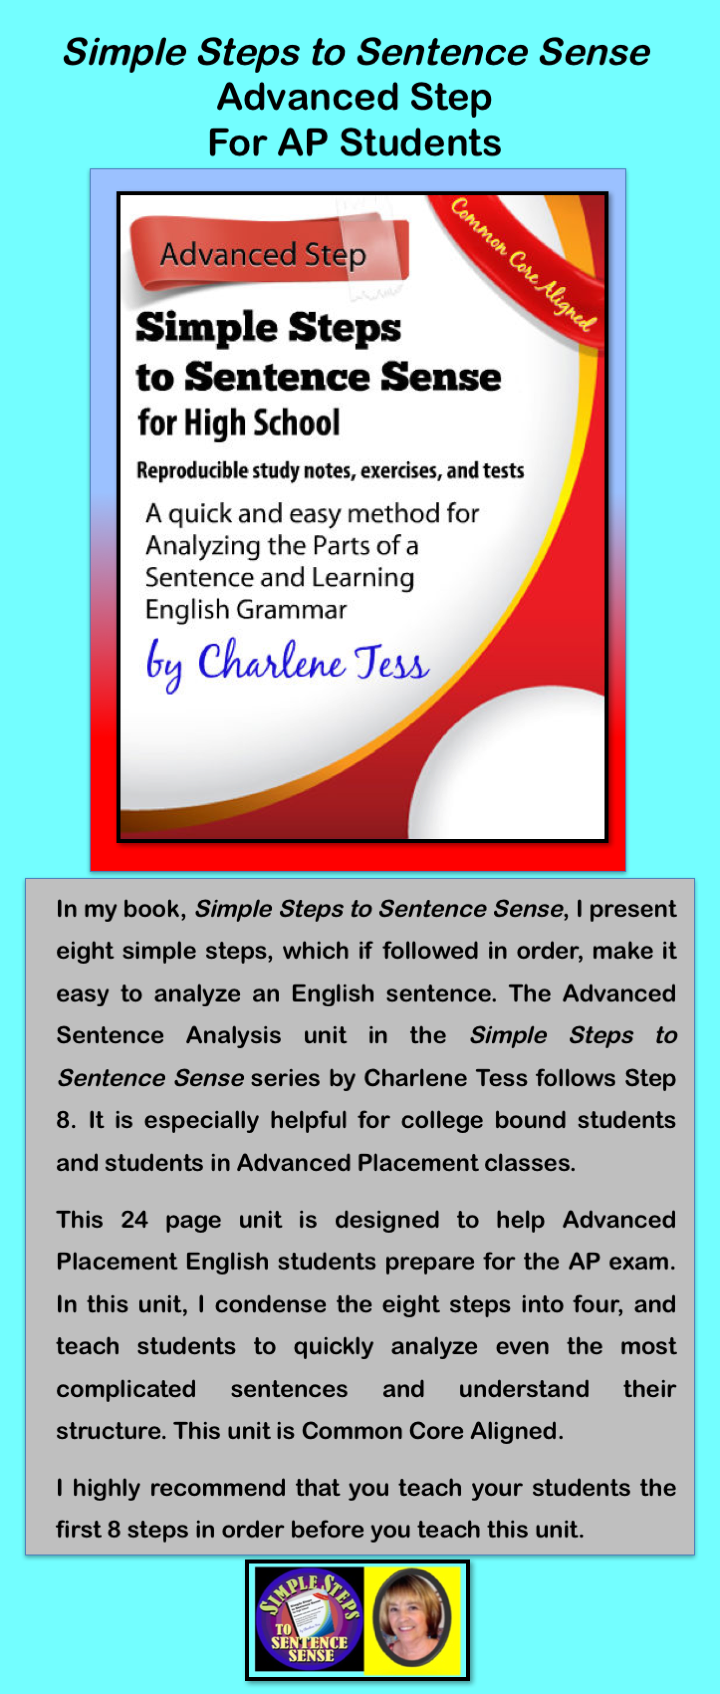 Advanced Sentence Analysis Grammar Unit from Simple Steps to